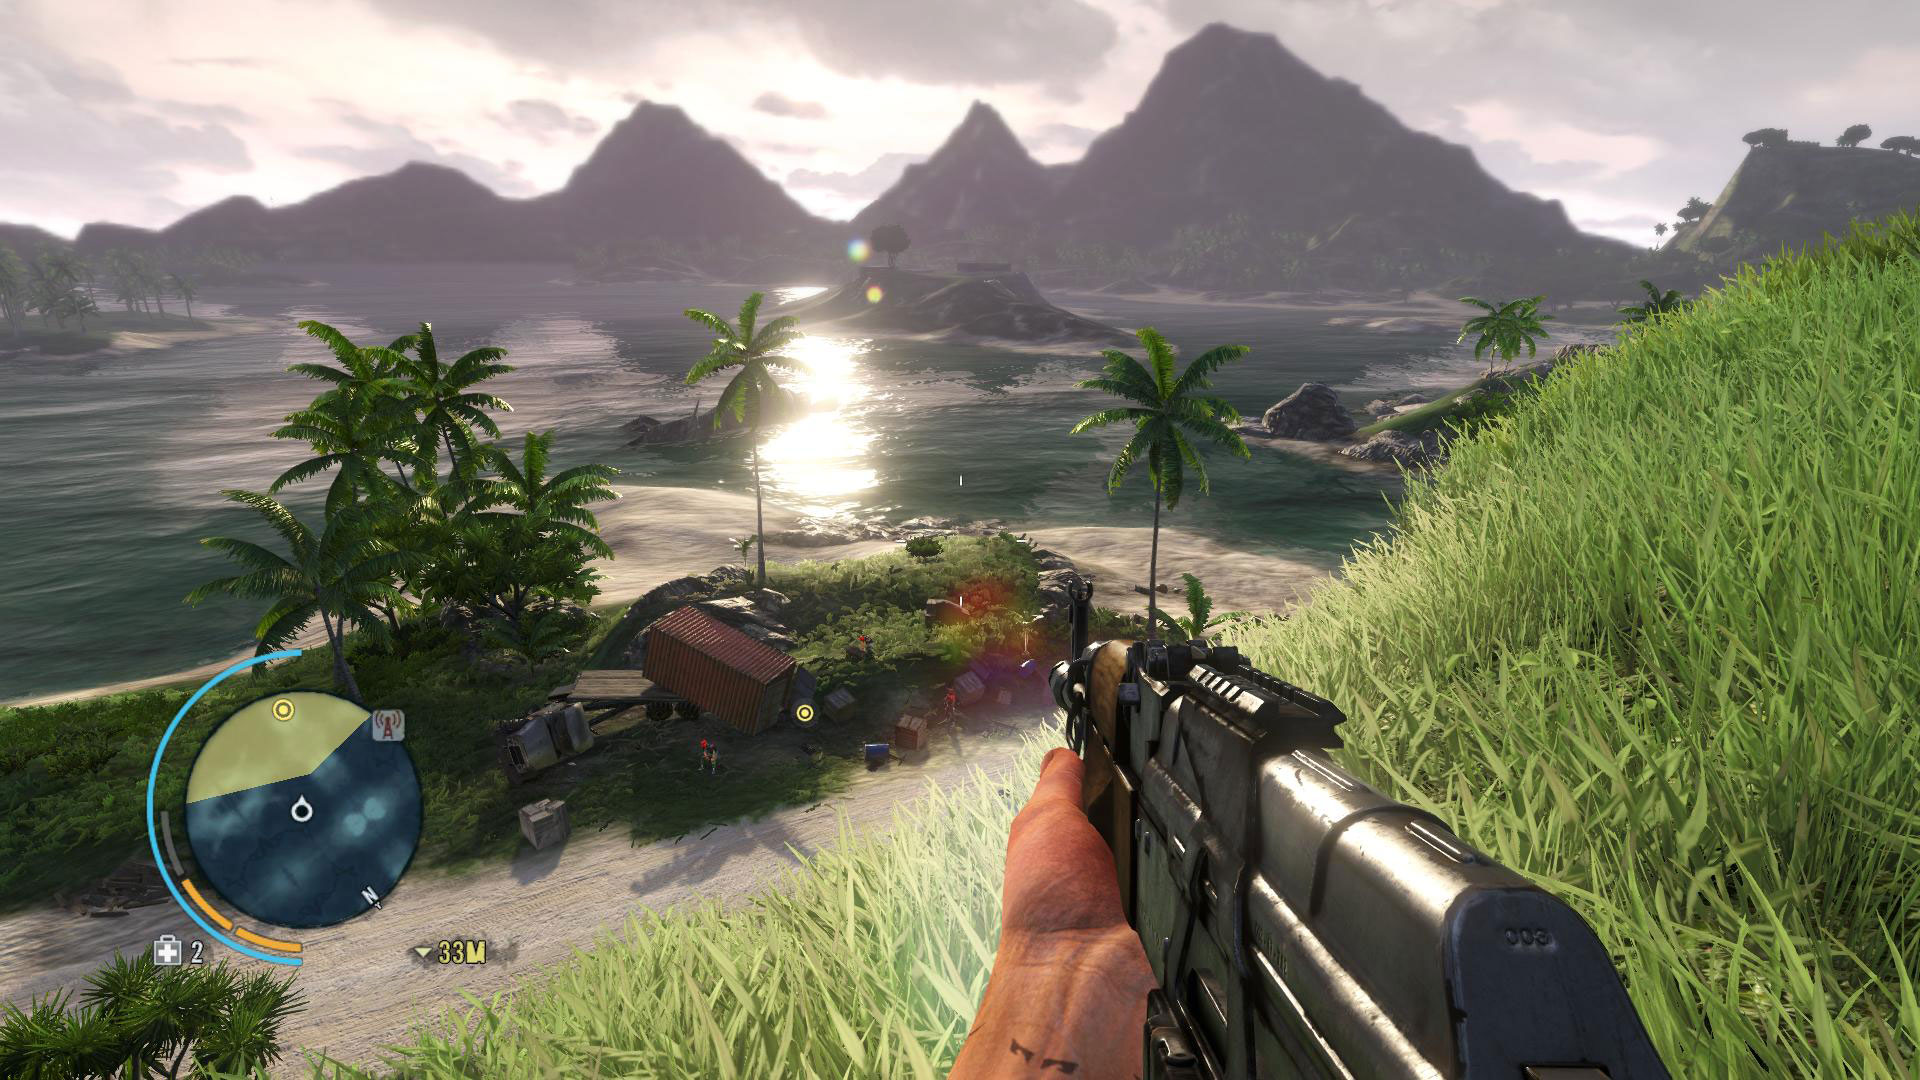 Earth 3d Live Wallpaper Windows 7 Far Cry 3 Free Download Crohasit Download Pc Games For